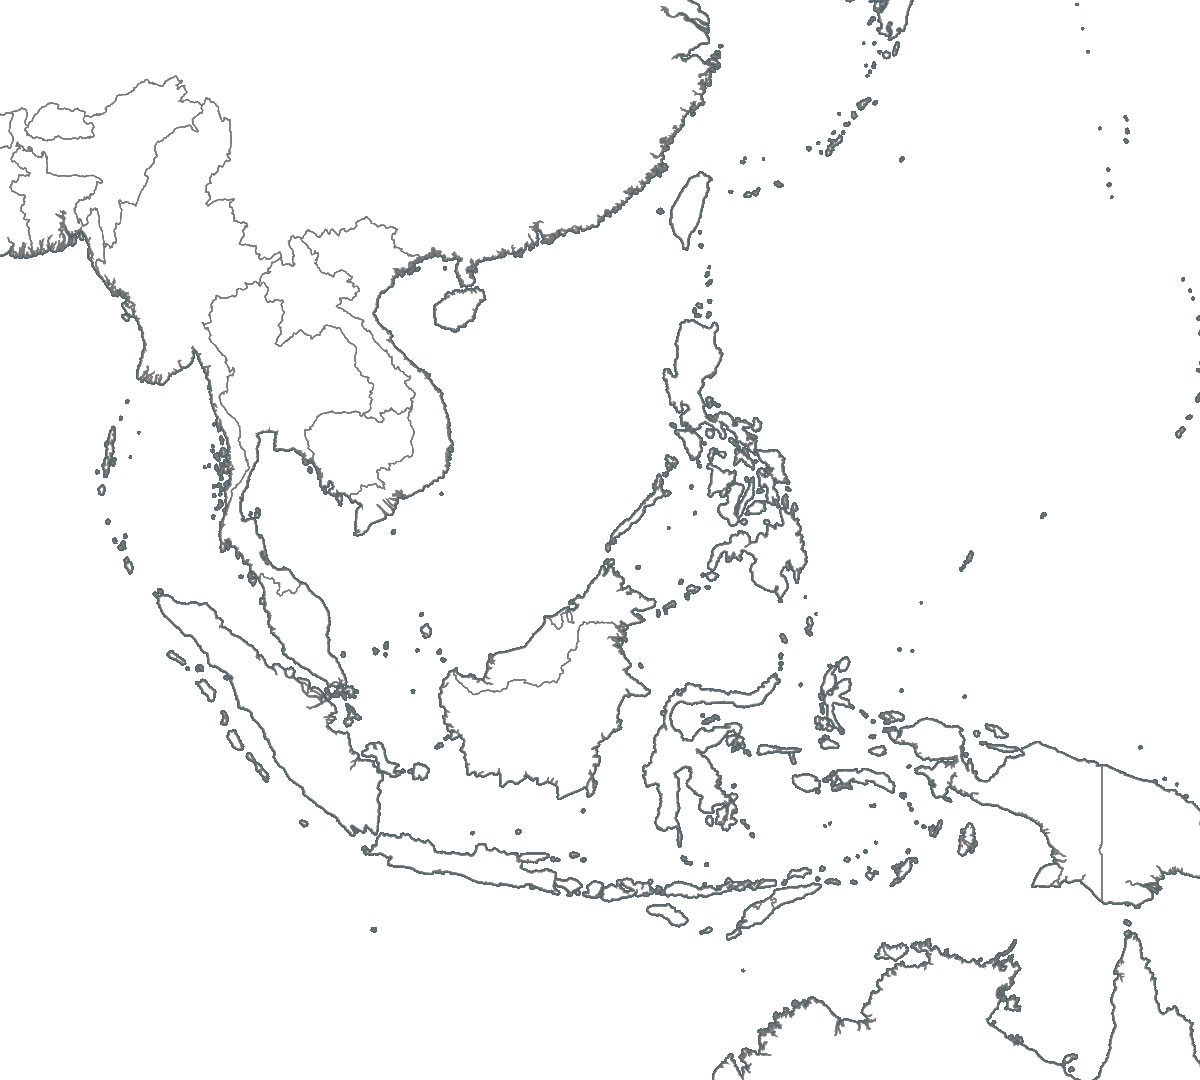 8 Free Maps Of Asean And Southeast Asia